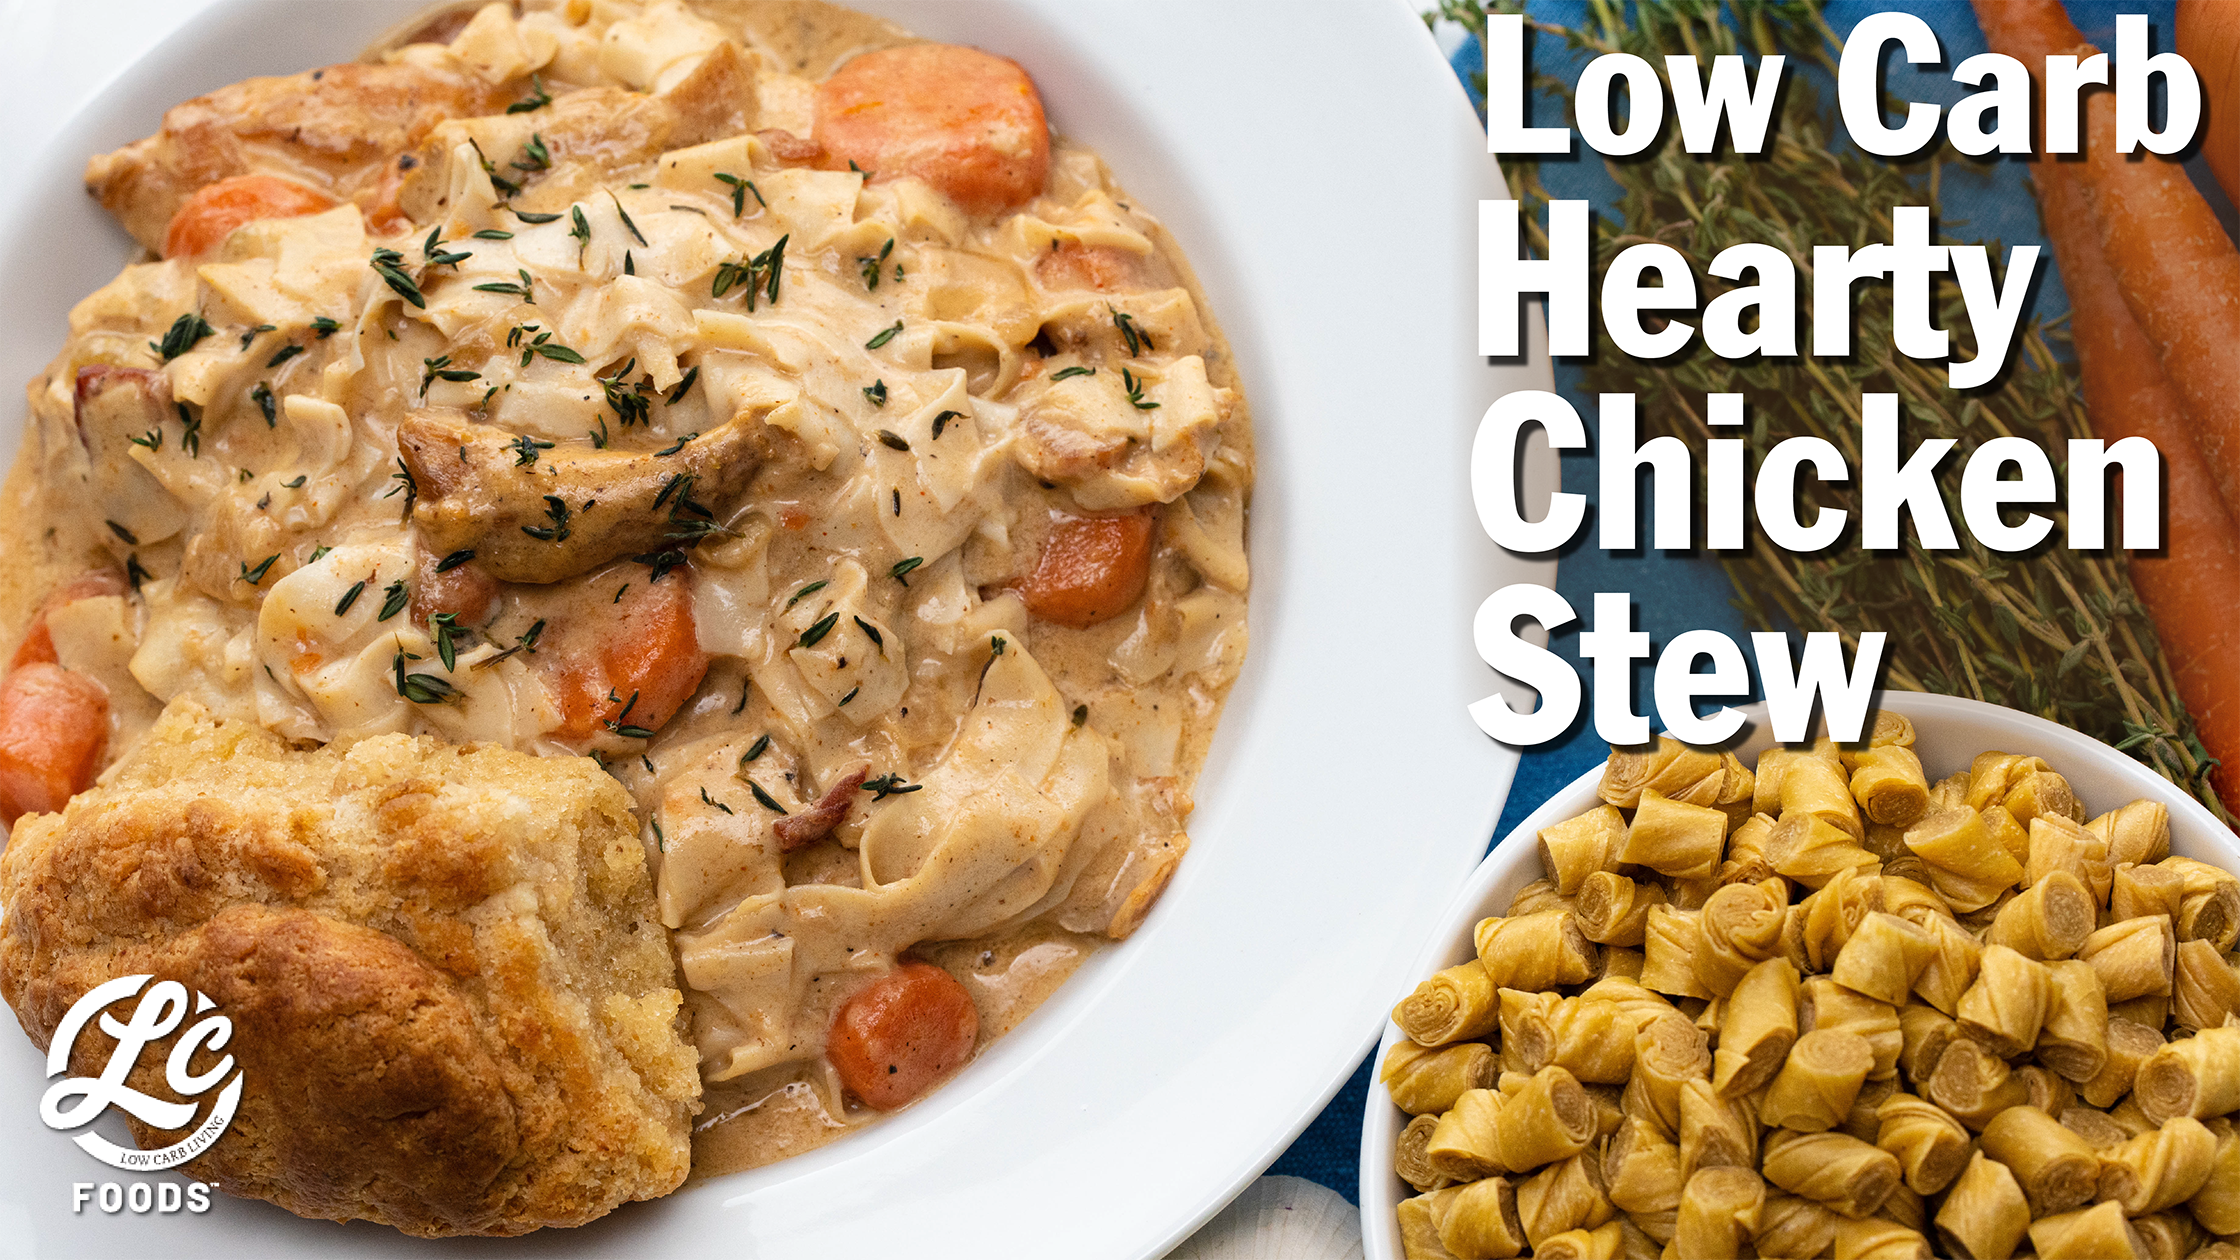 Thumbnail for Low Carb Hearty Chicken Stew